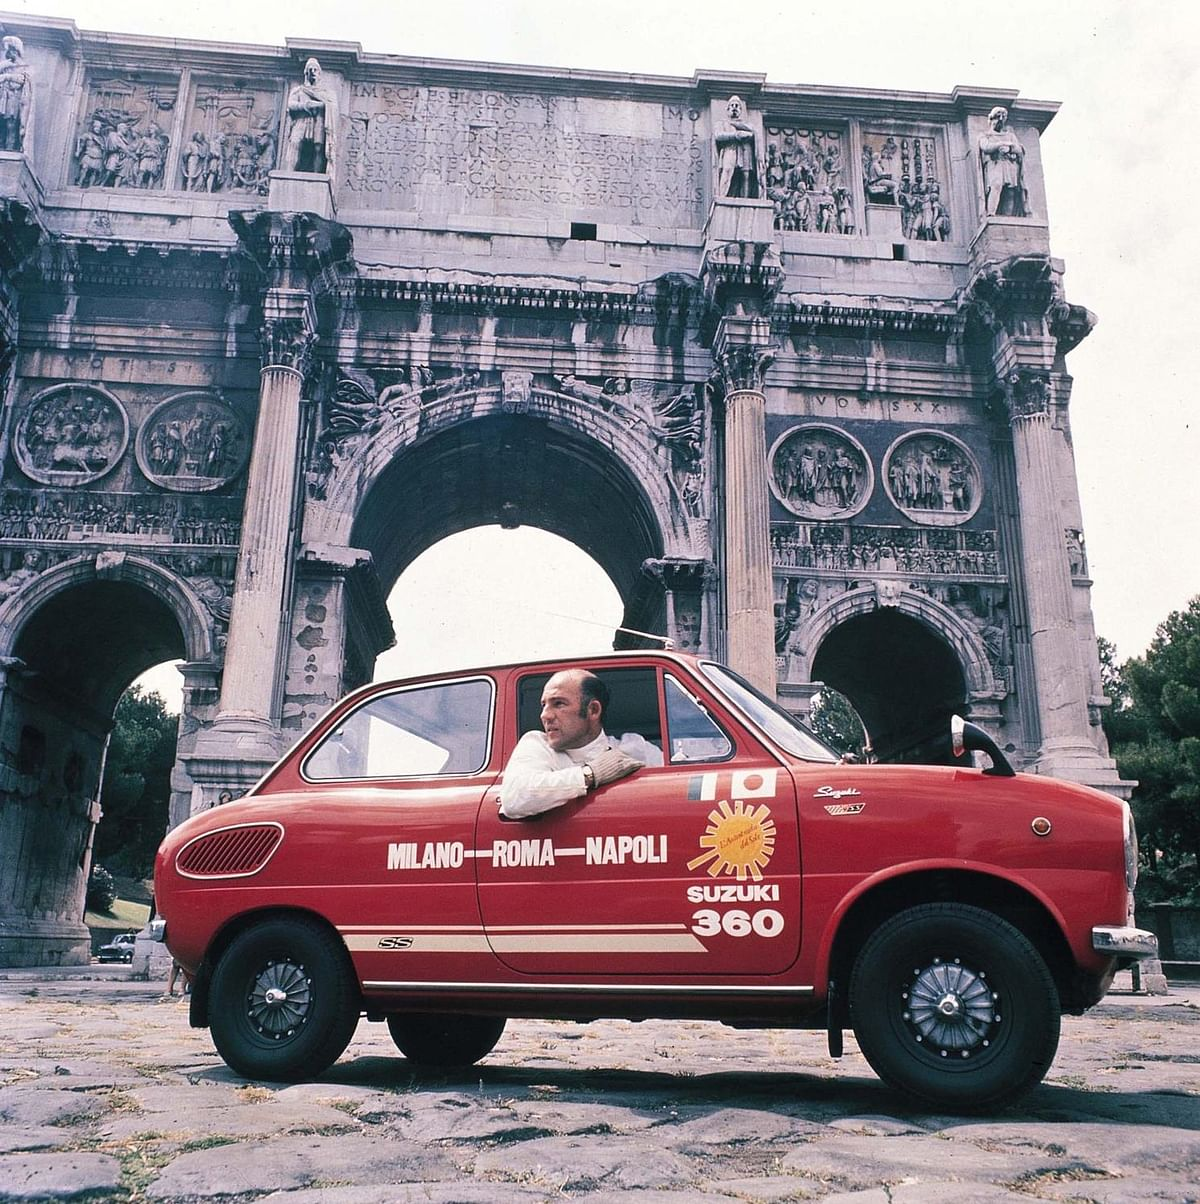 Sir Stirling Moss driving for Suzuki